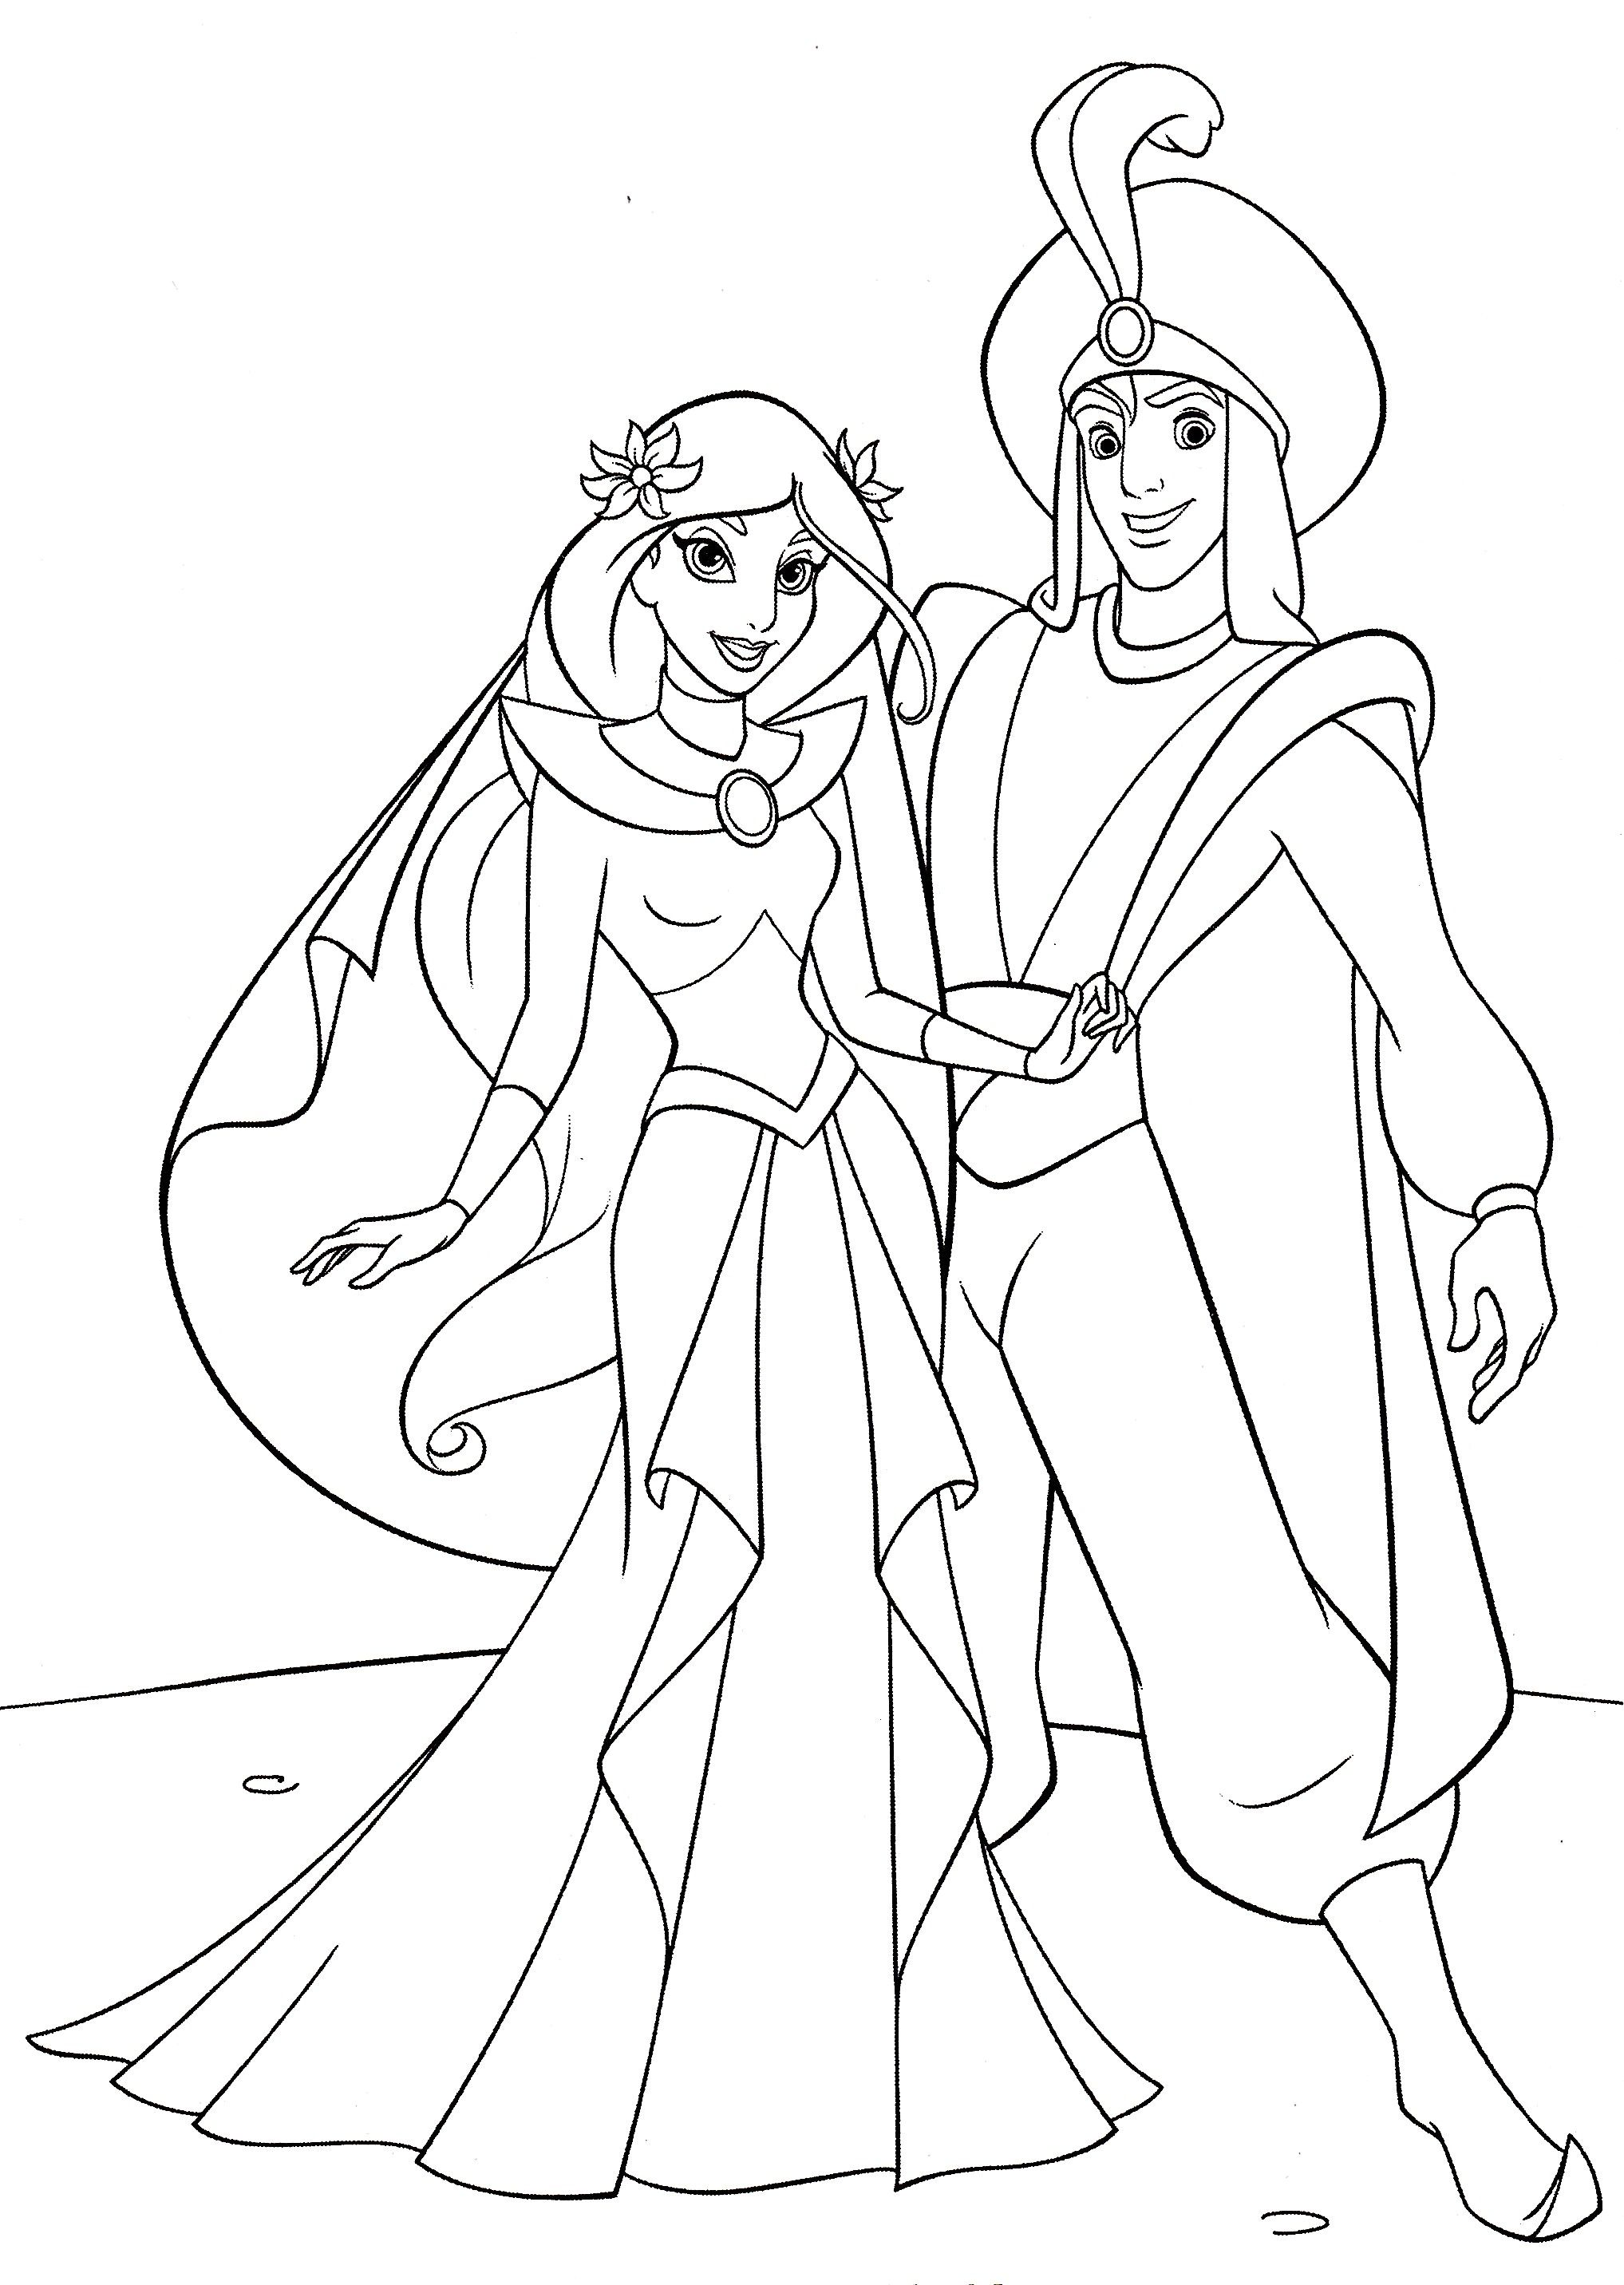 Pin By Lorisa Schnetzky On Coloring Disney Princess Coloring Pages Princess Coloring Pages Disney Princess Colors